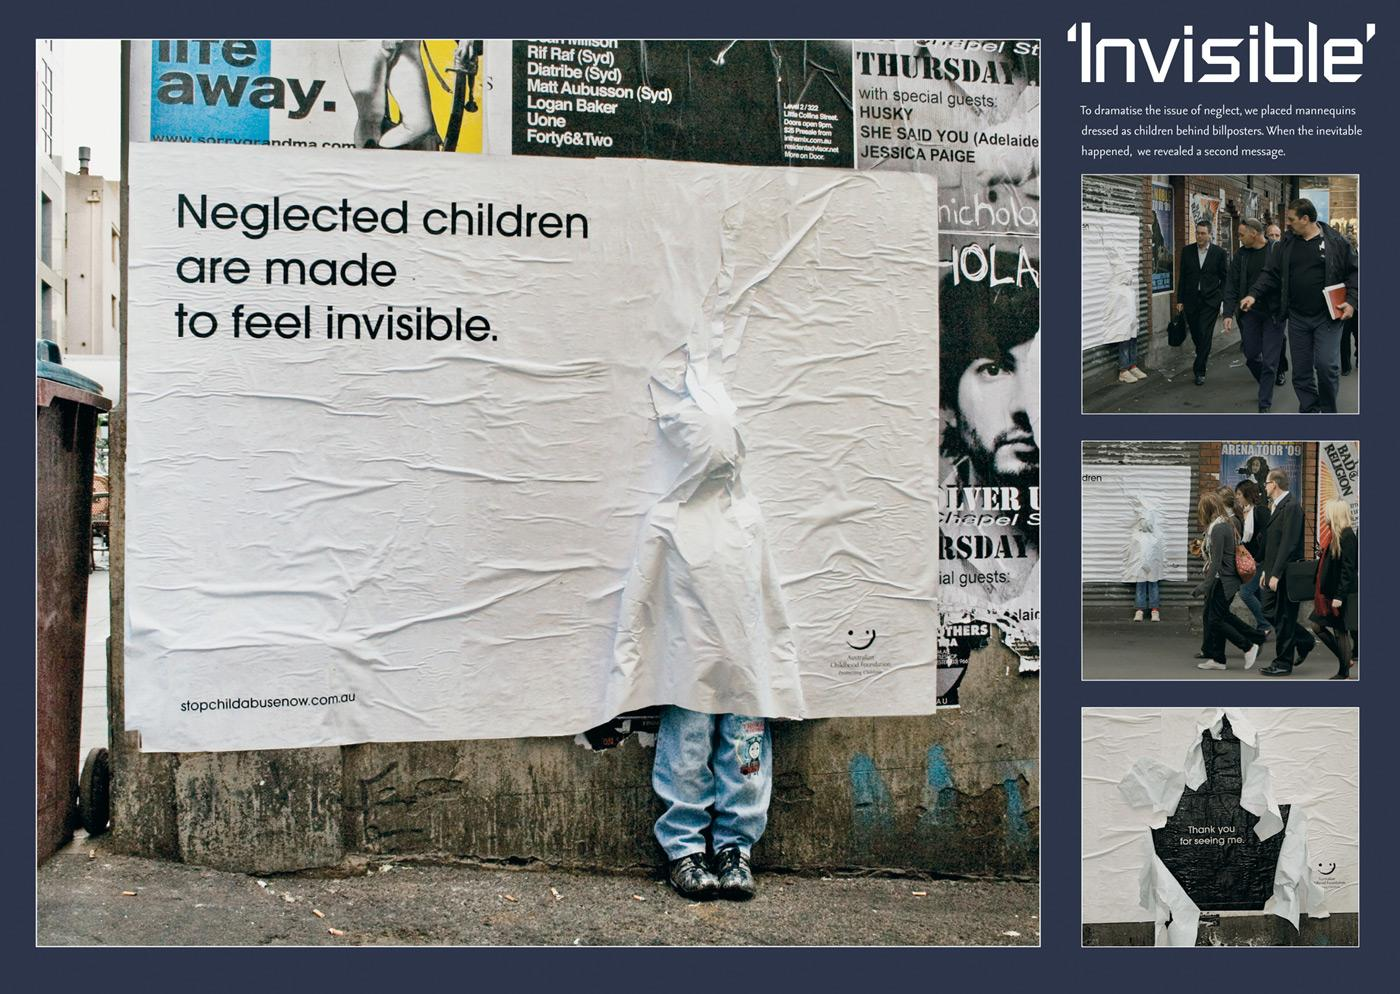 Australian Childhood Foundation Ambient Ad -  Invisible